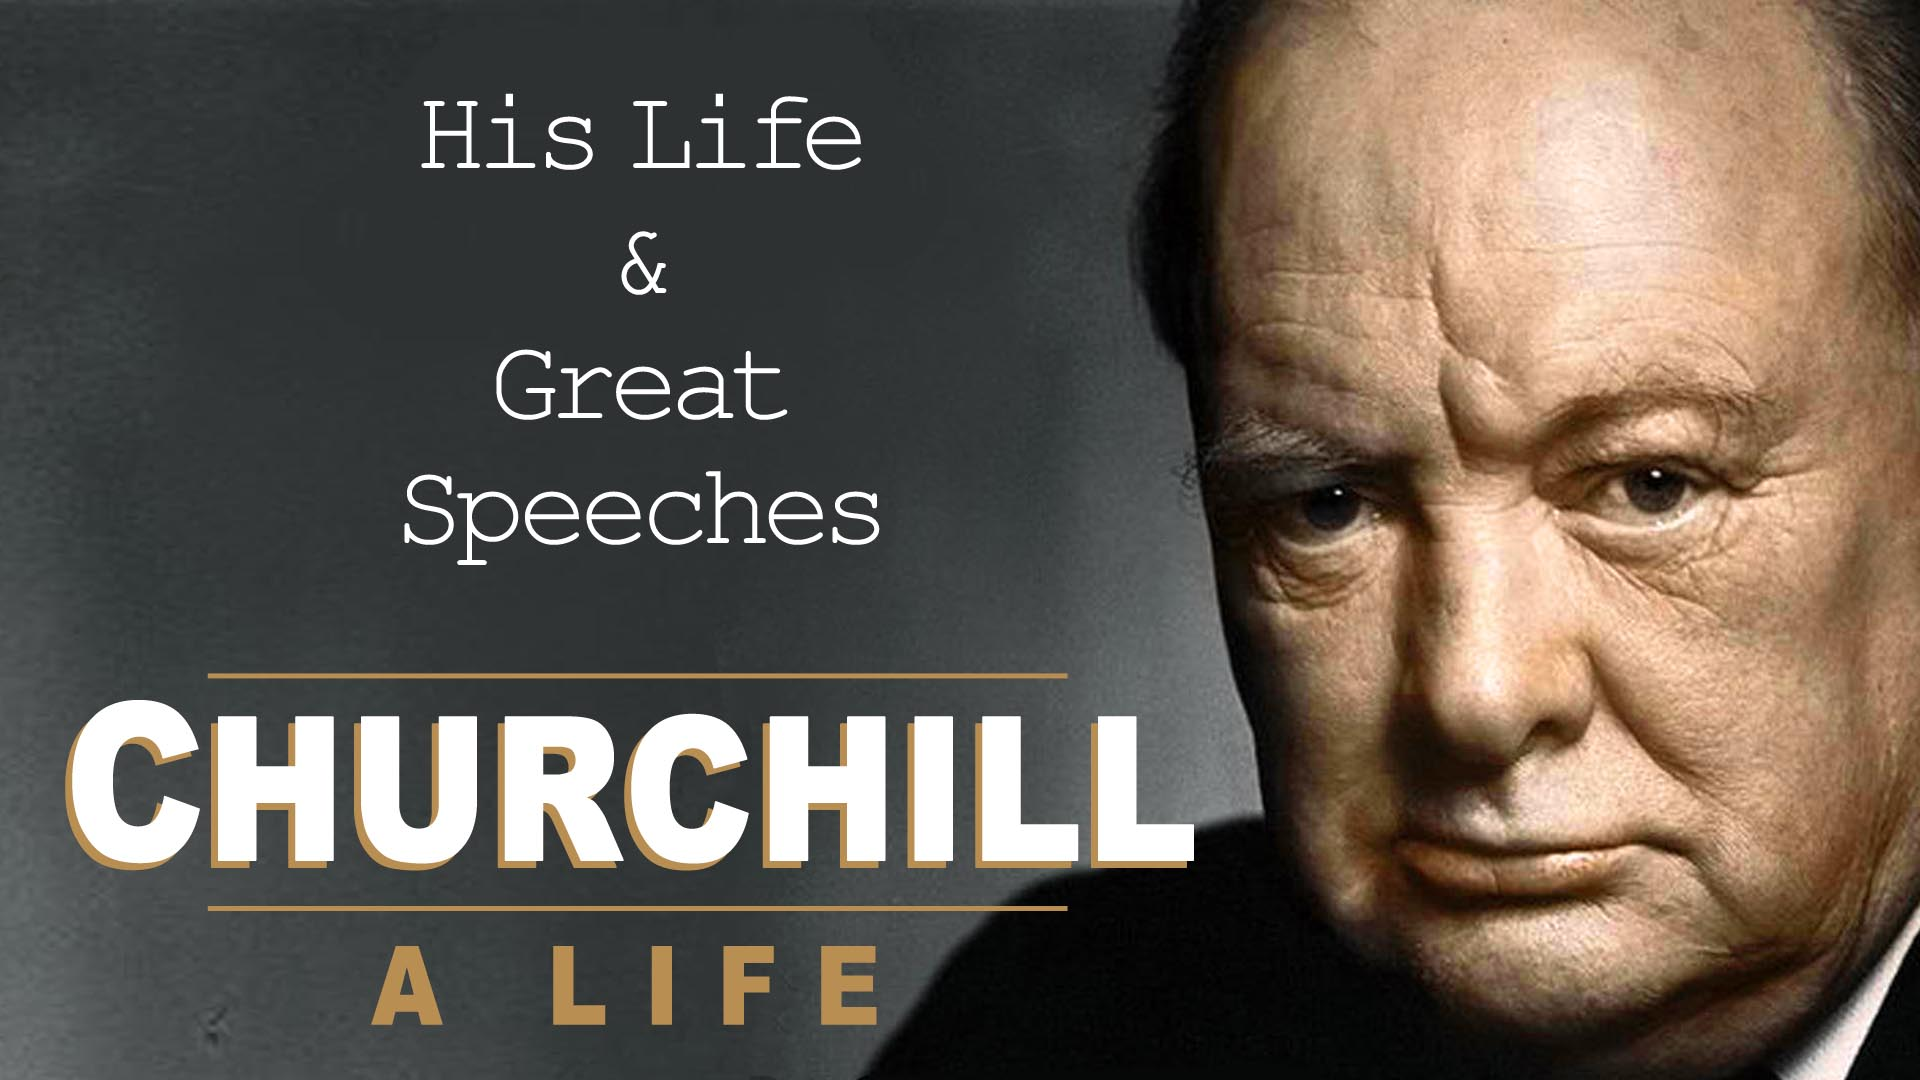 Churchill A Life: His Life & Great Speeches -